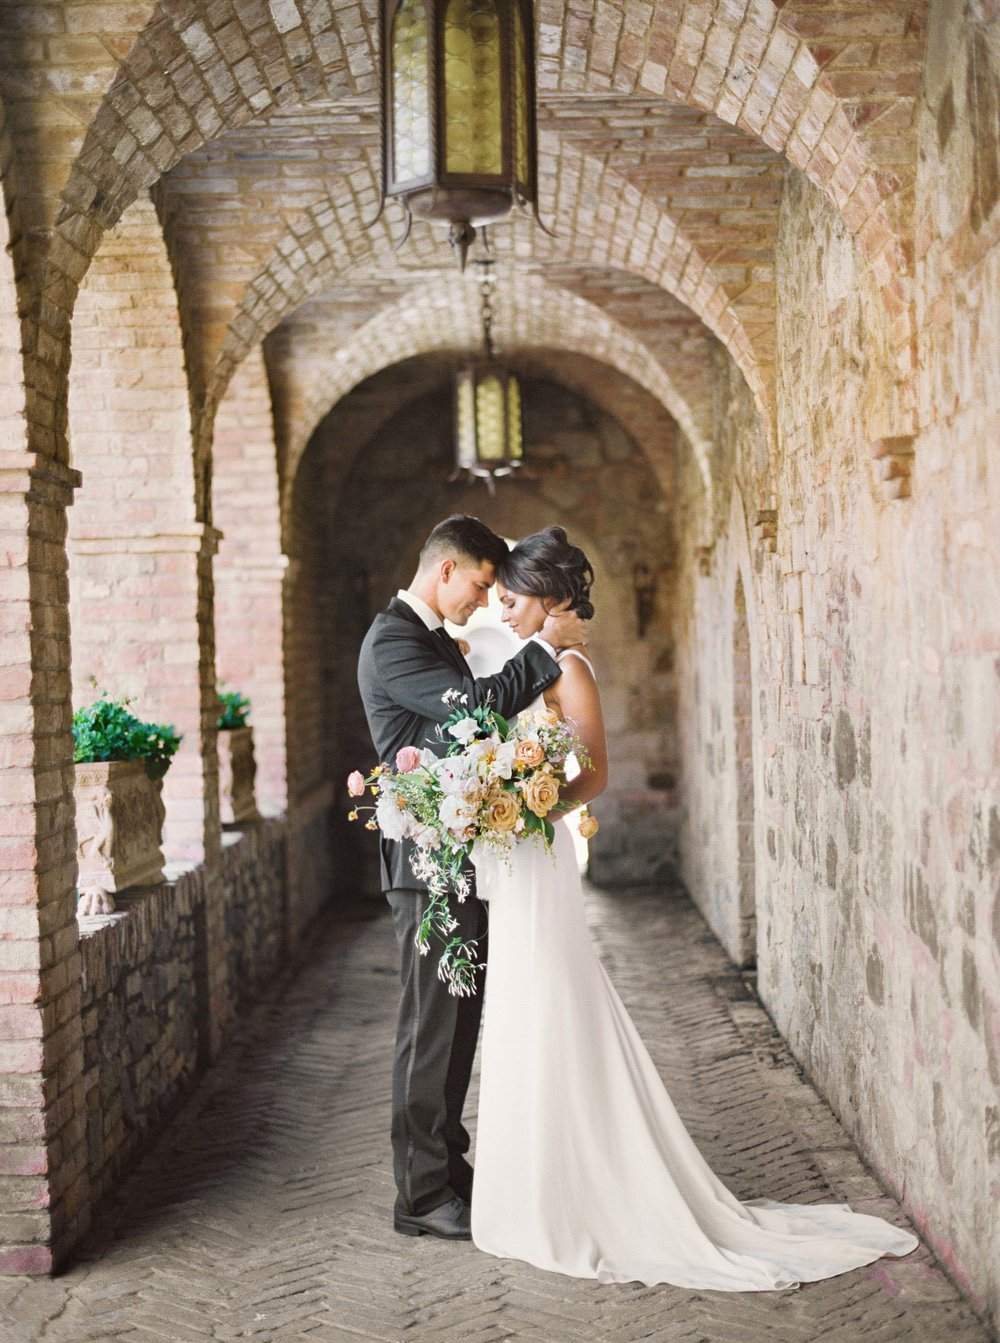 030napa_wedding_photographer_and_videographer_destination_and_elopement_photography.jpg